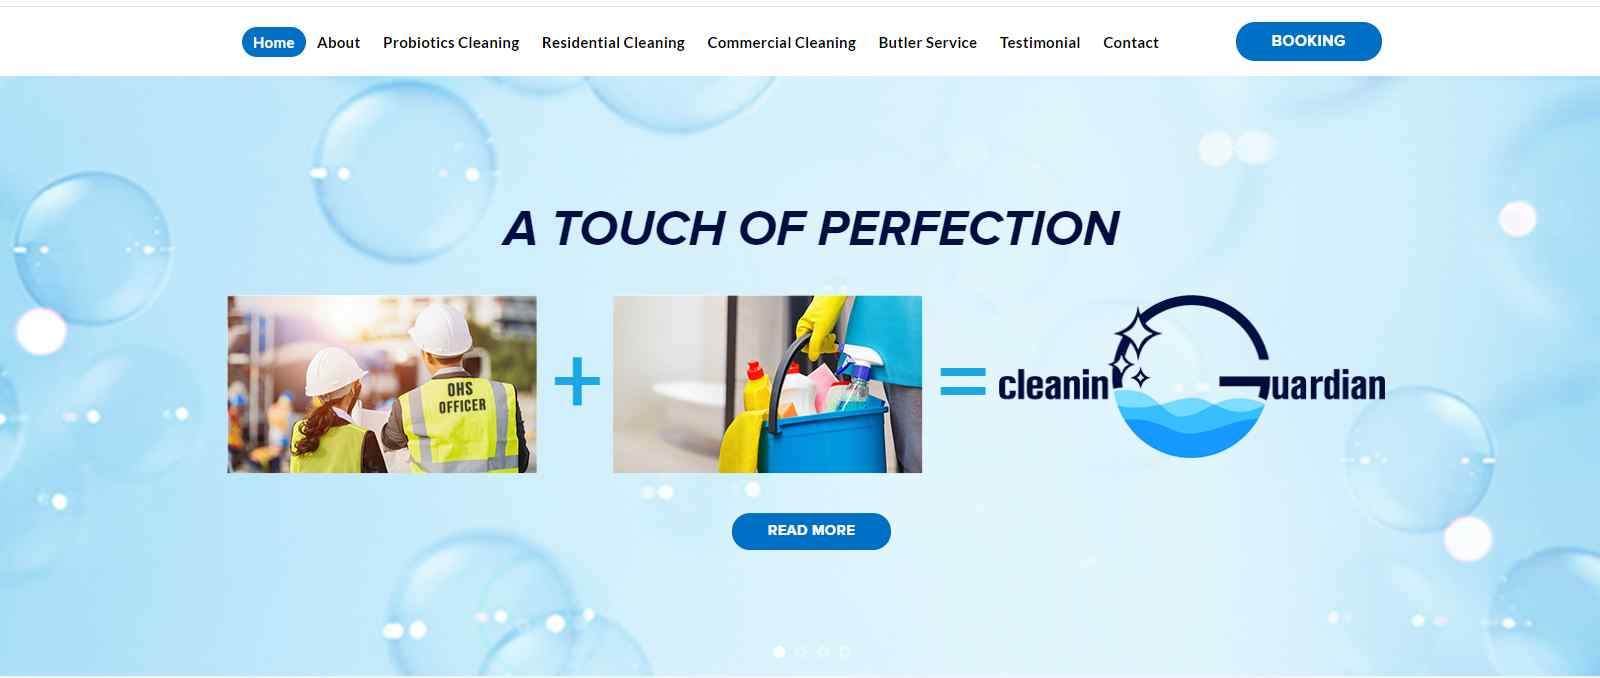 cleaning Guardian Top Curtain Cleaning Services in Singapore